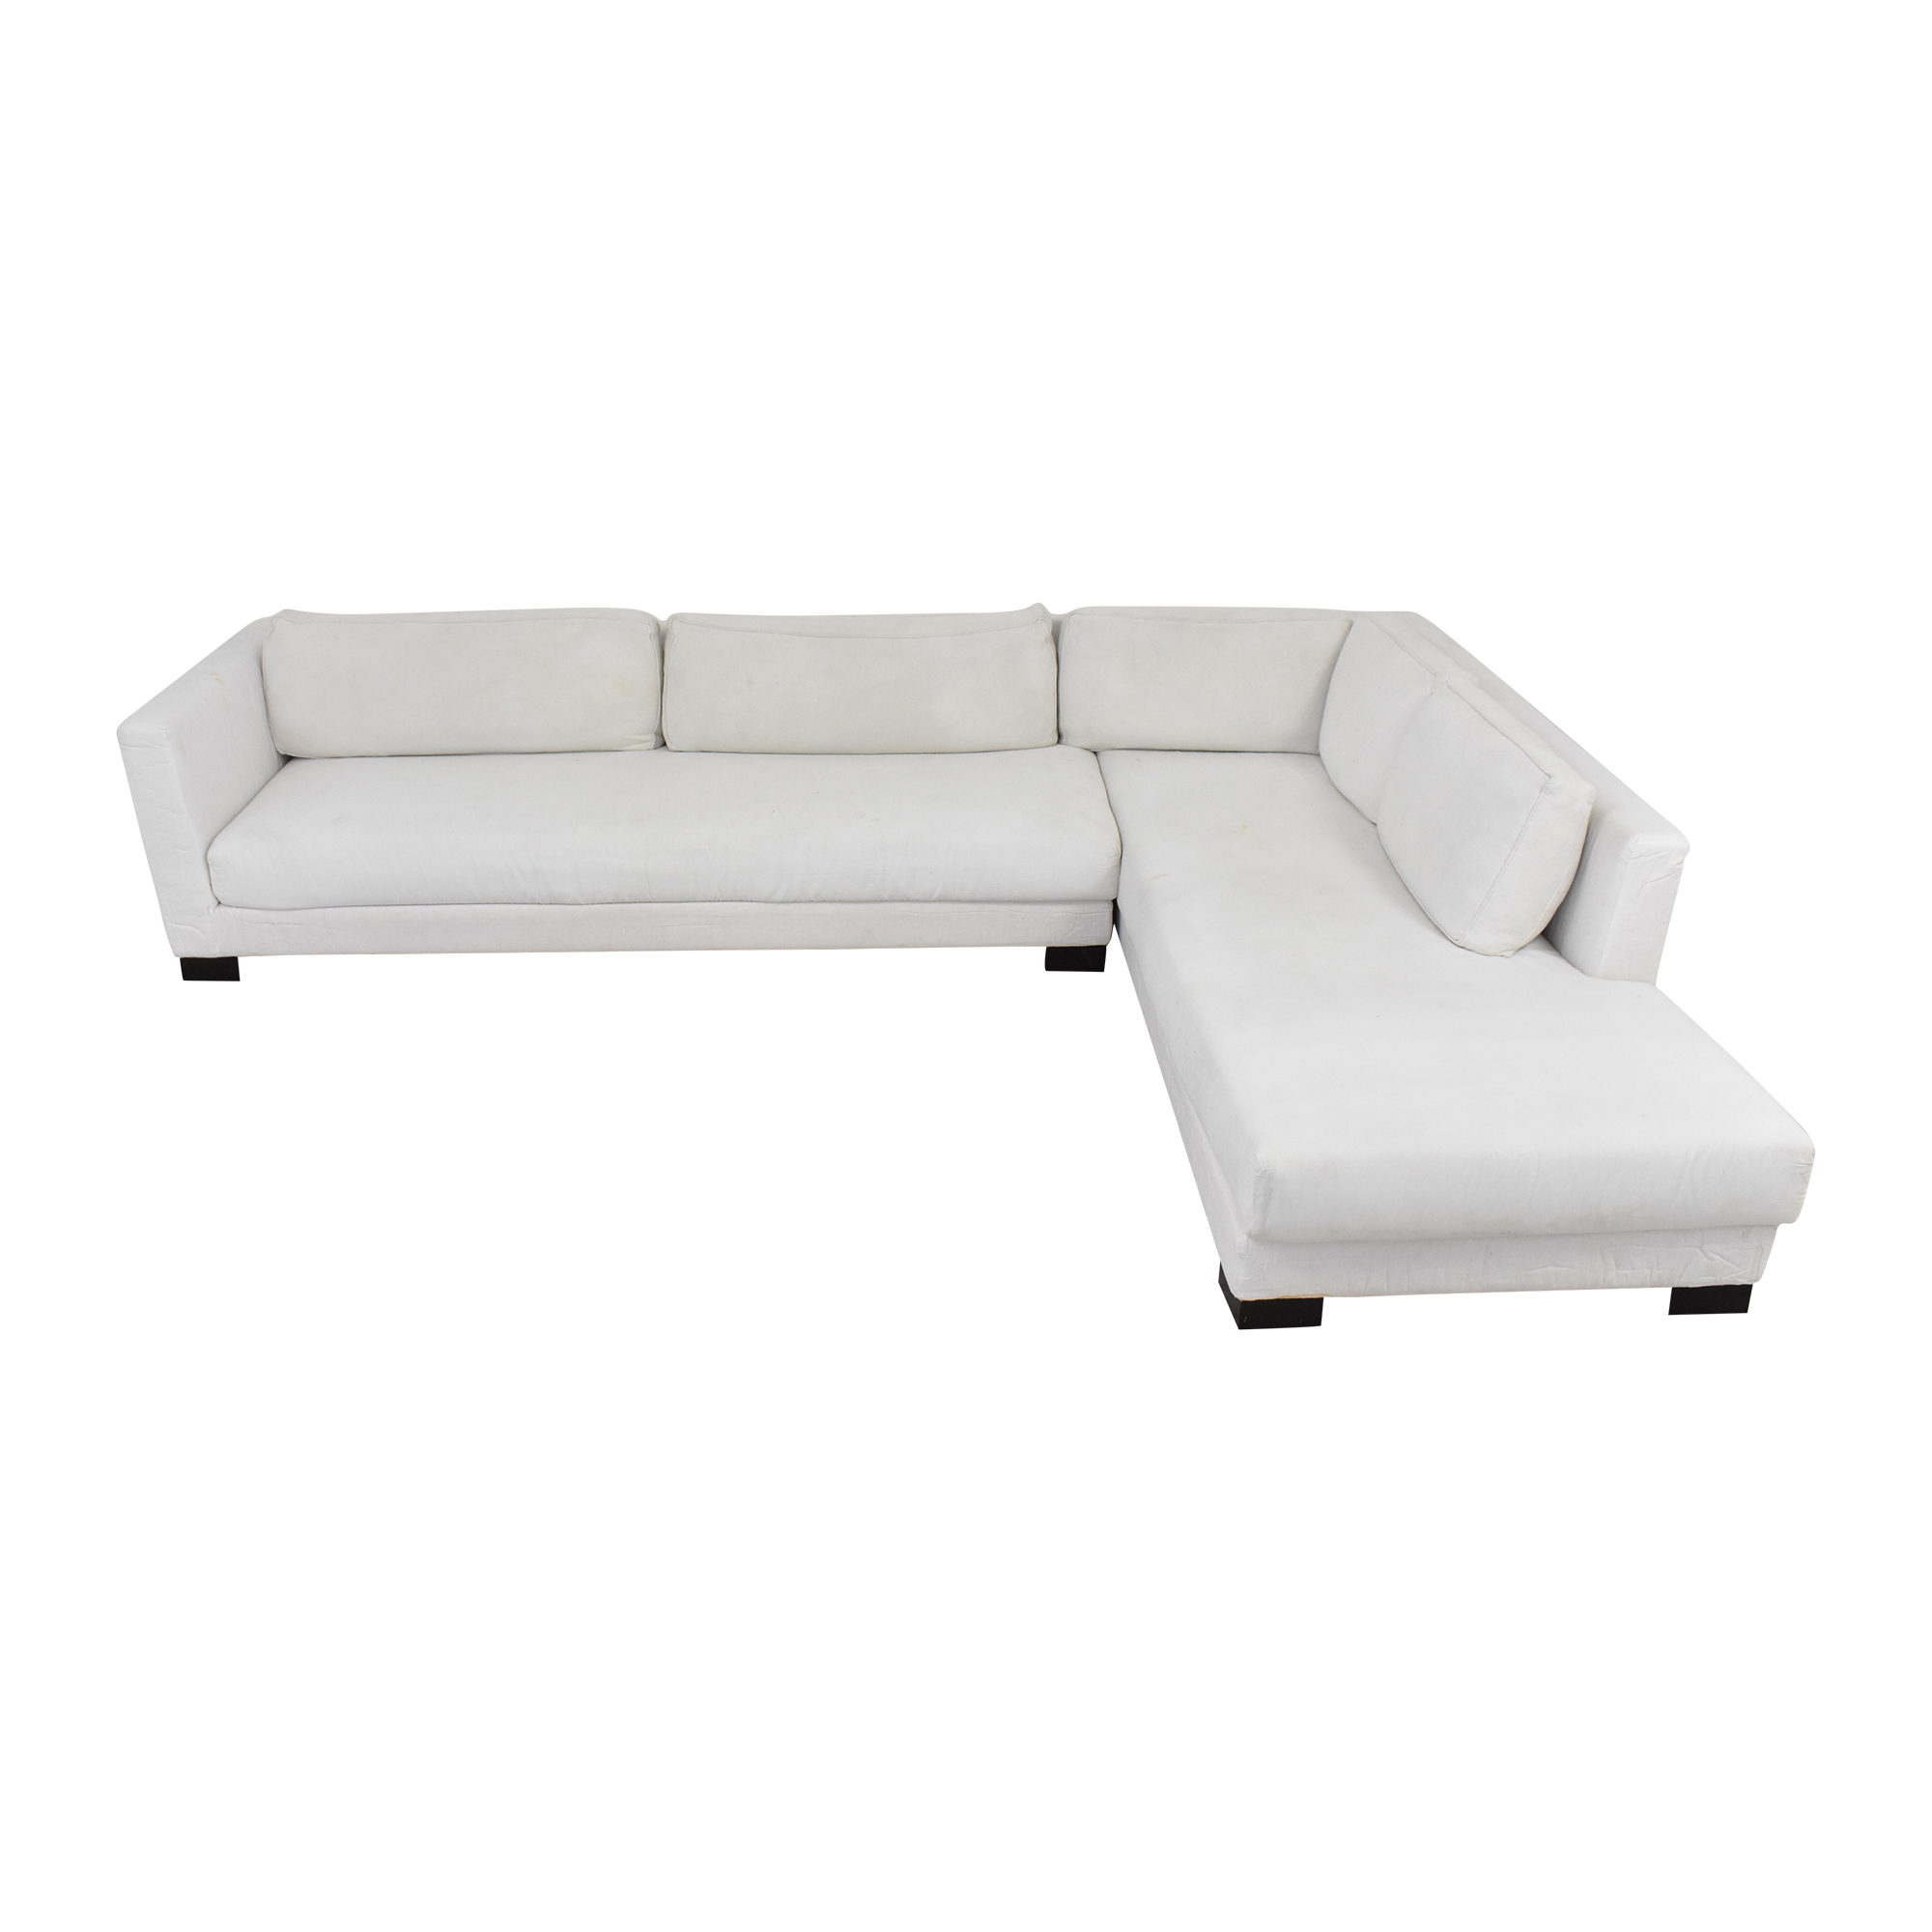 Verzelloni Link Sectional Sofa with Chaise sale